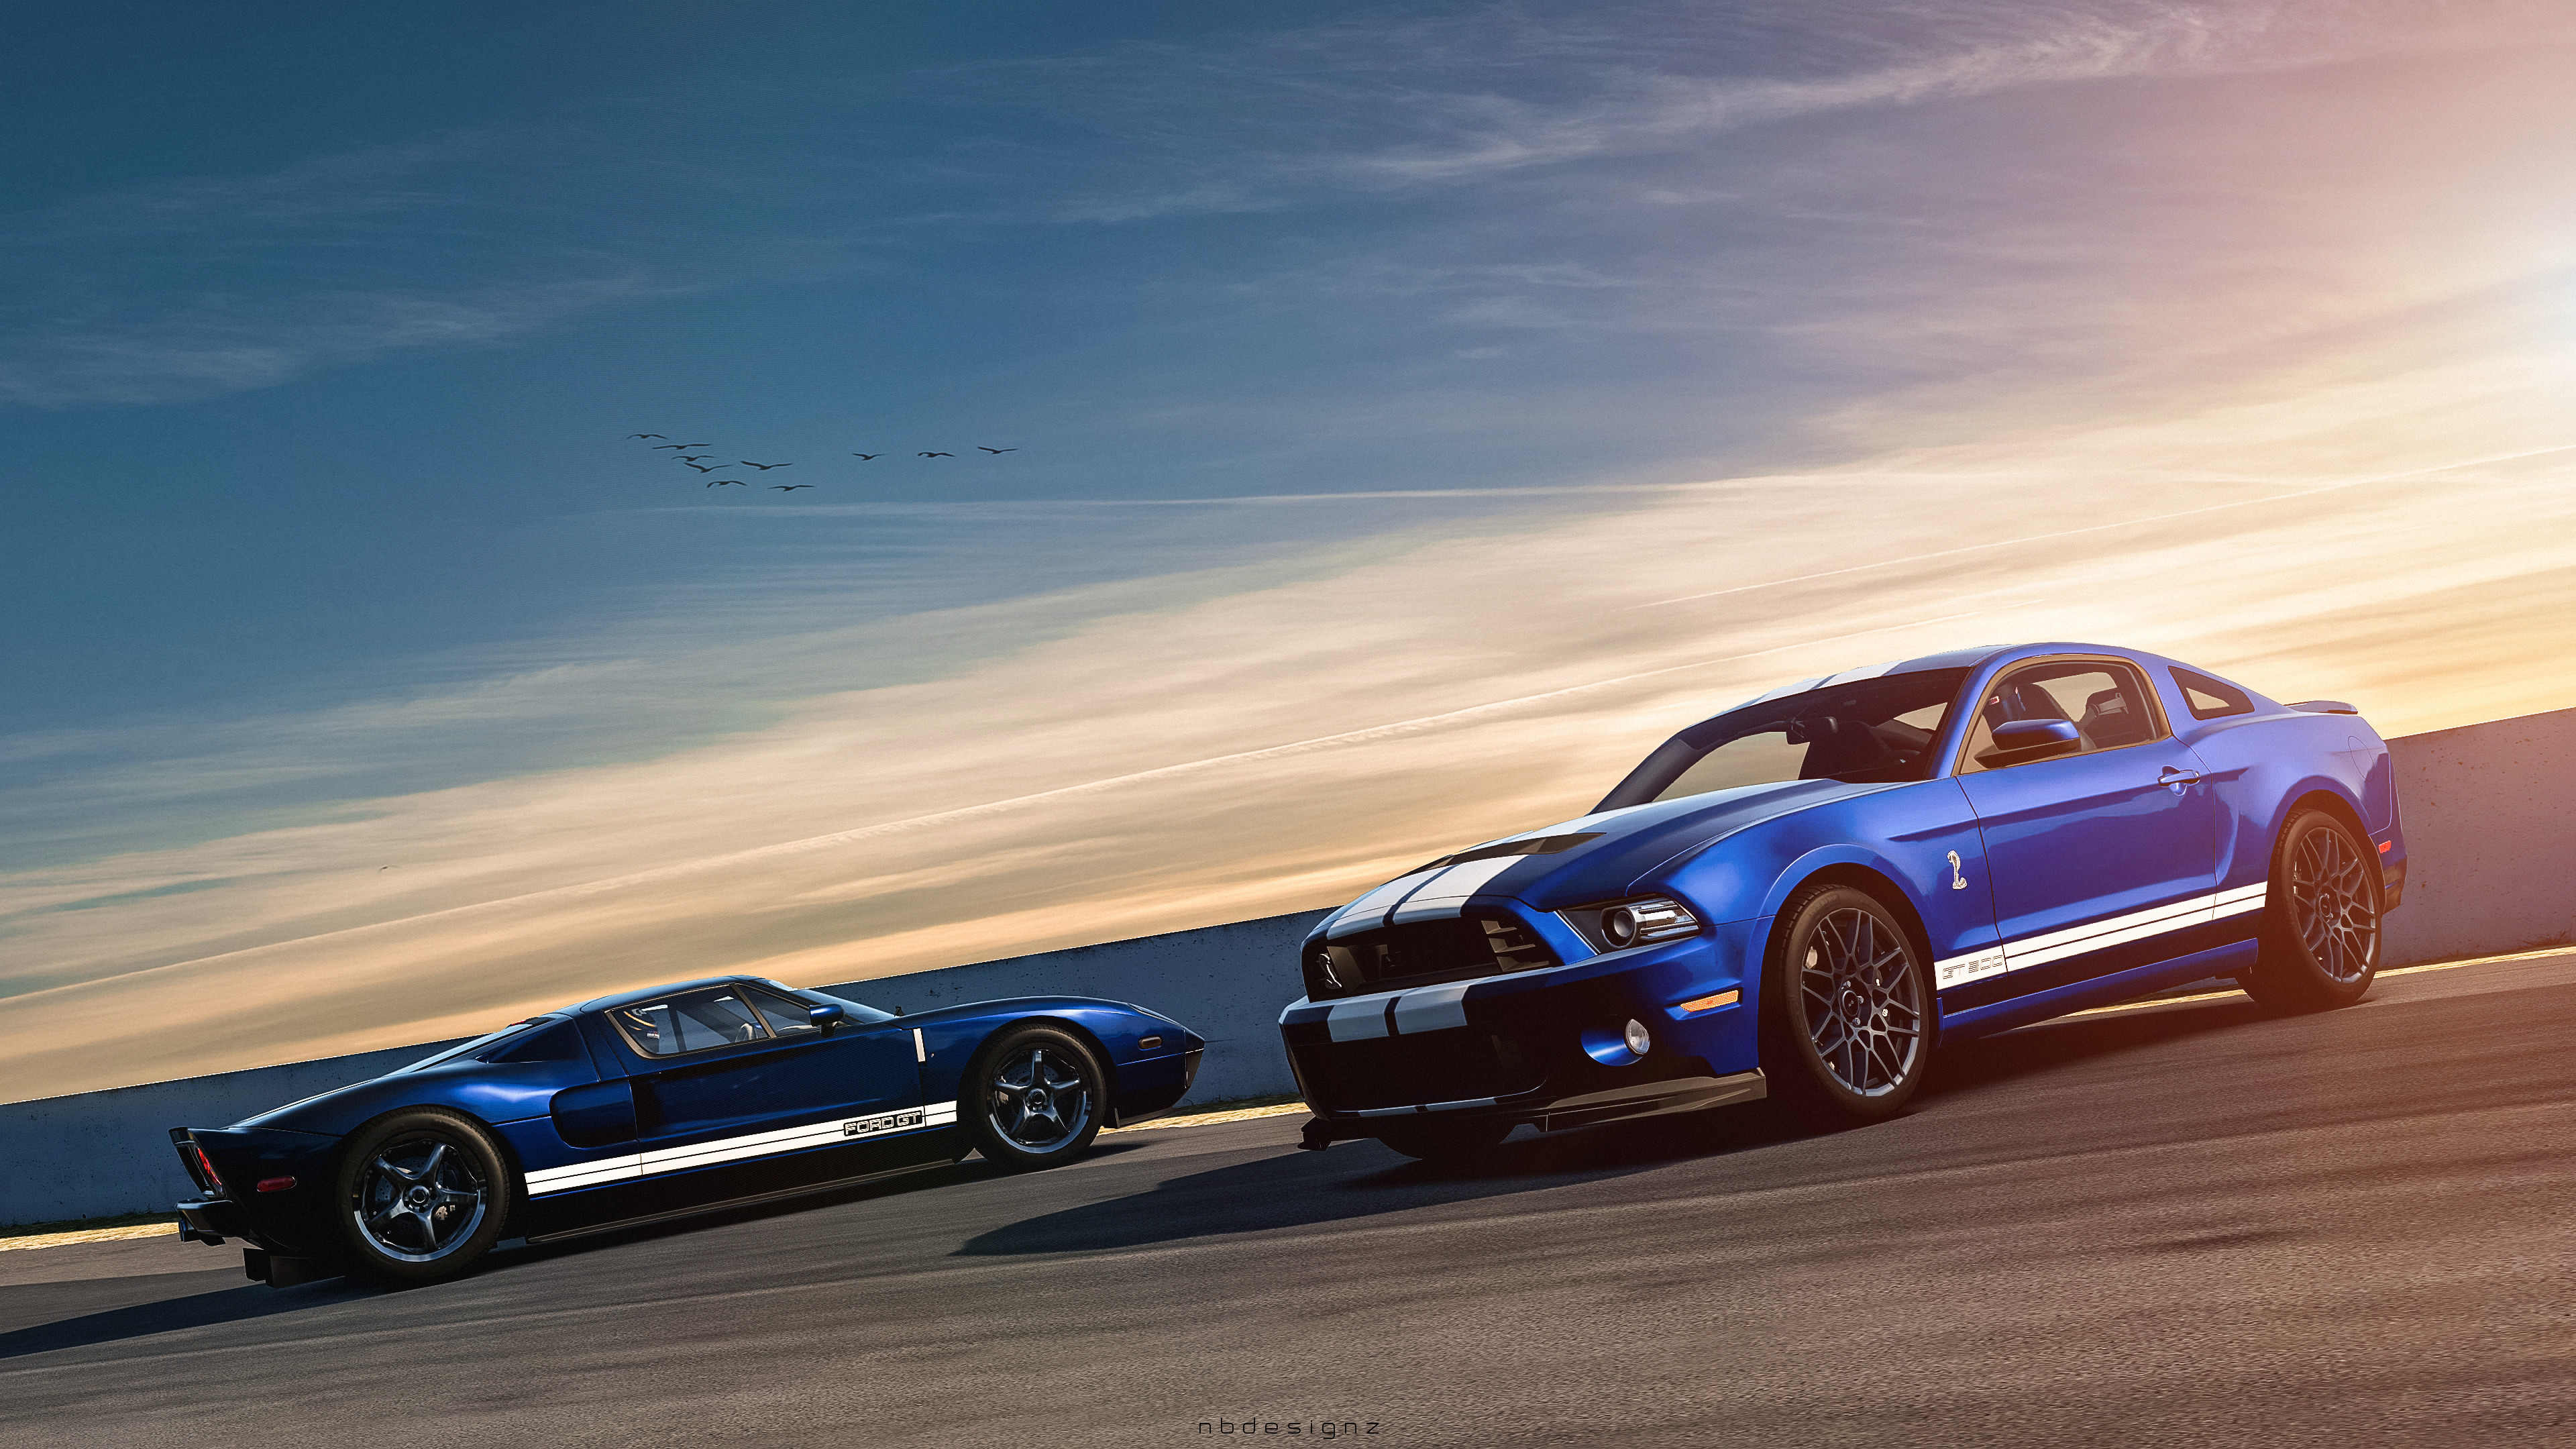 Res: 3840x2160, Tags: Ford Shelby GT500 Mustang